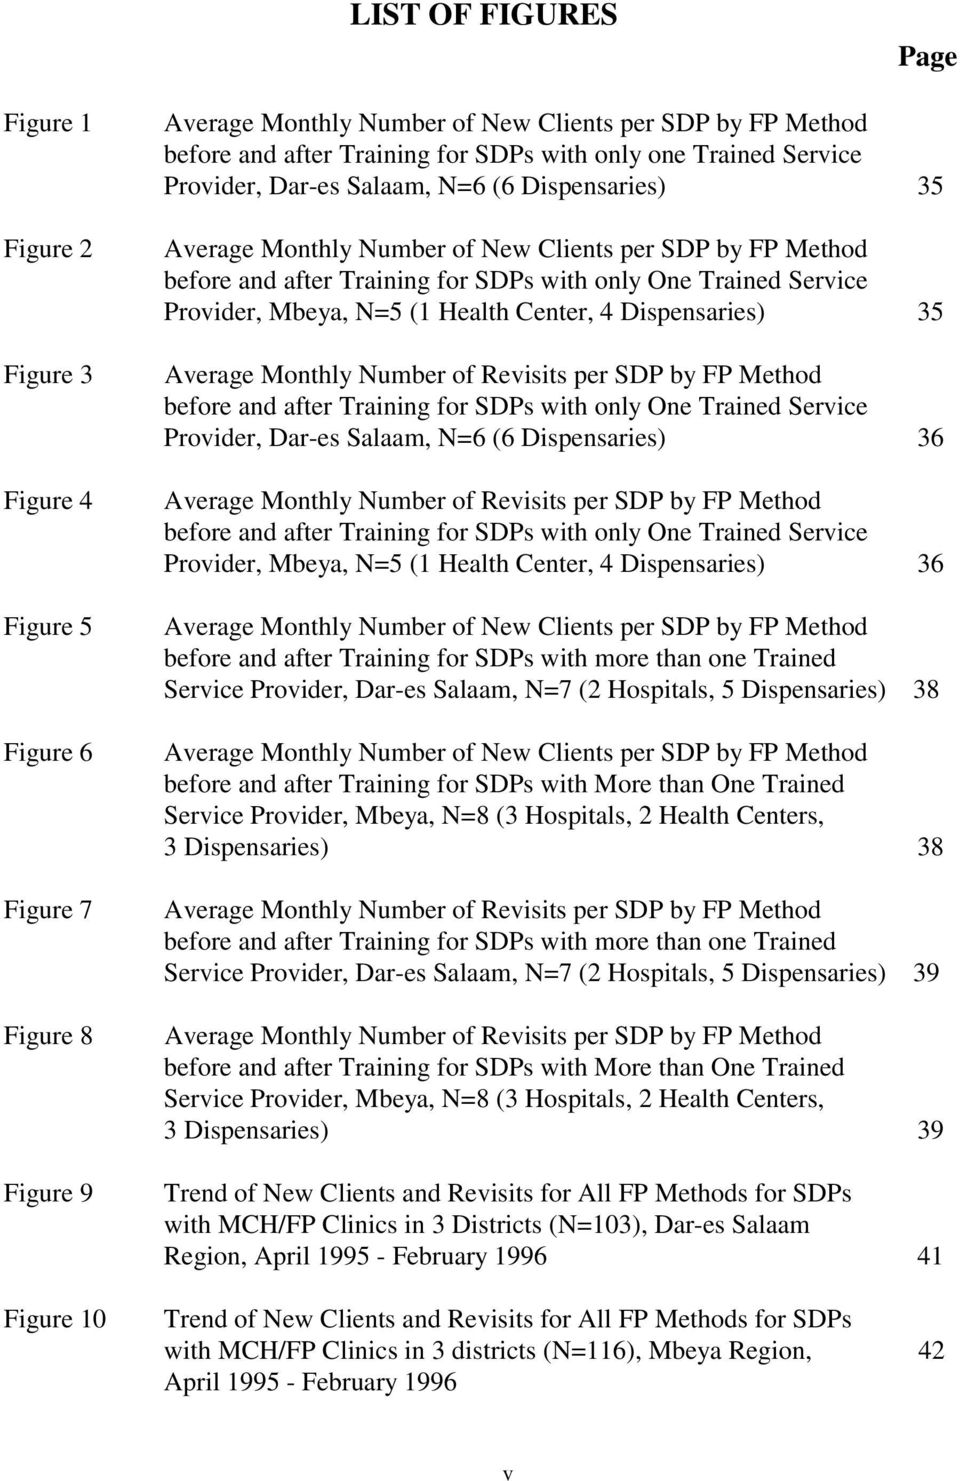 Trained Service Provider, Mbeya, N=5 (1 Health Center, 4 Dispensaries) 35 Average Monthly Number of Revisits per SDP by FP Method before and after Training for SDPs with only One Trained Service